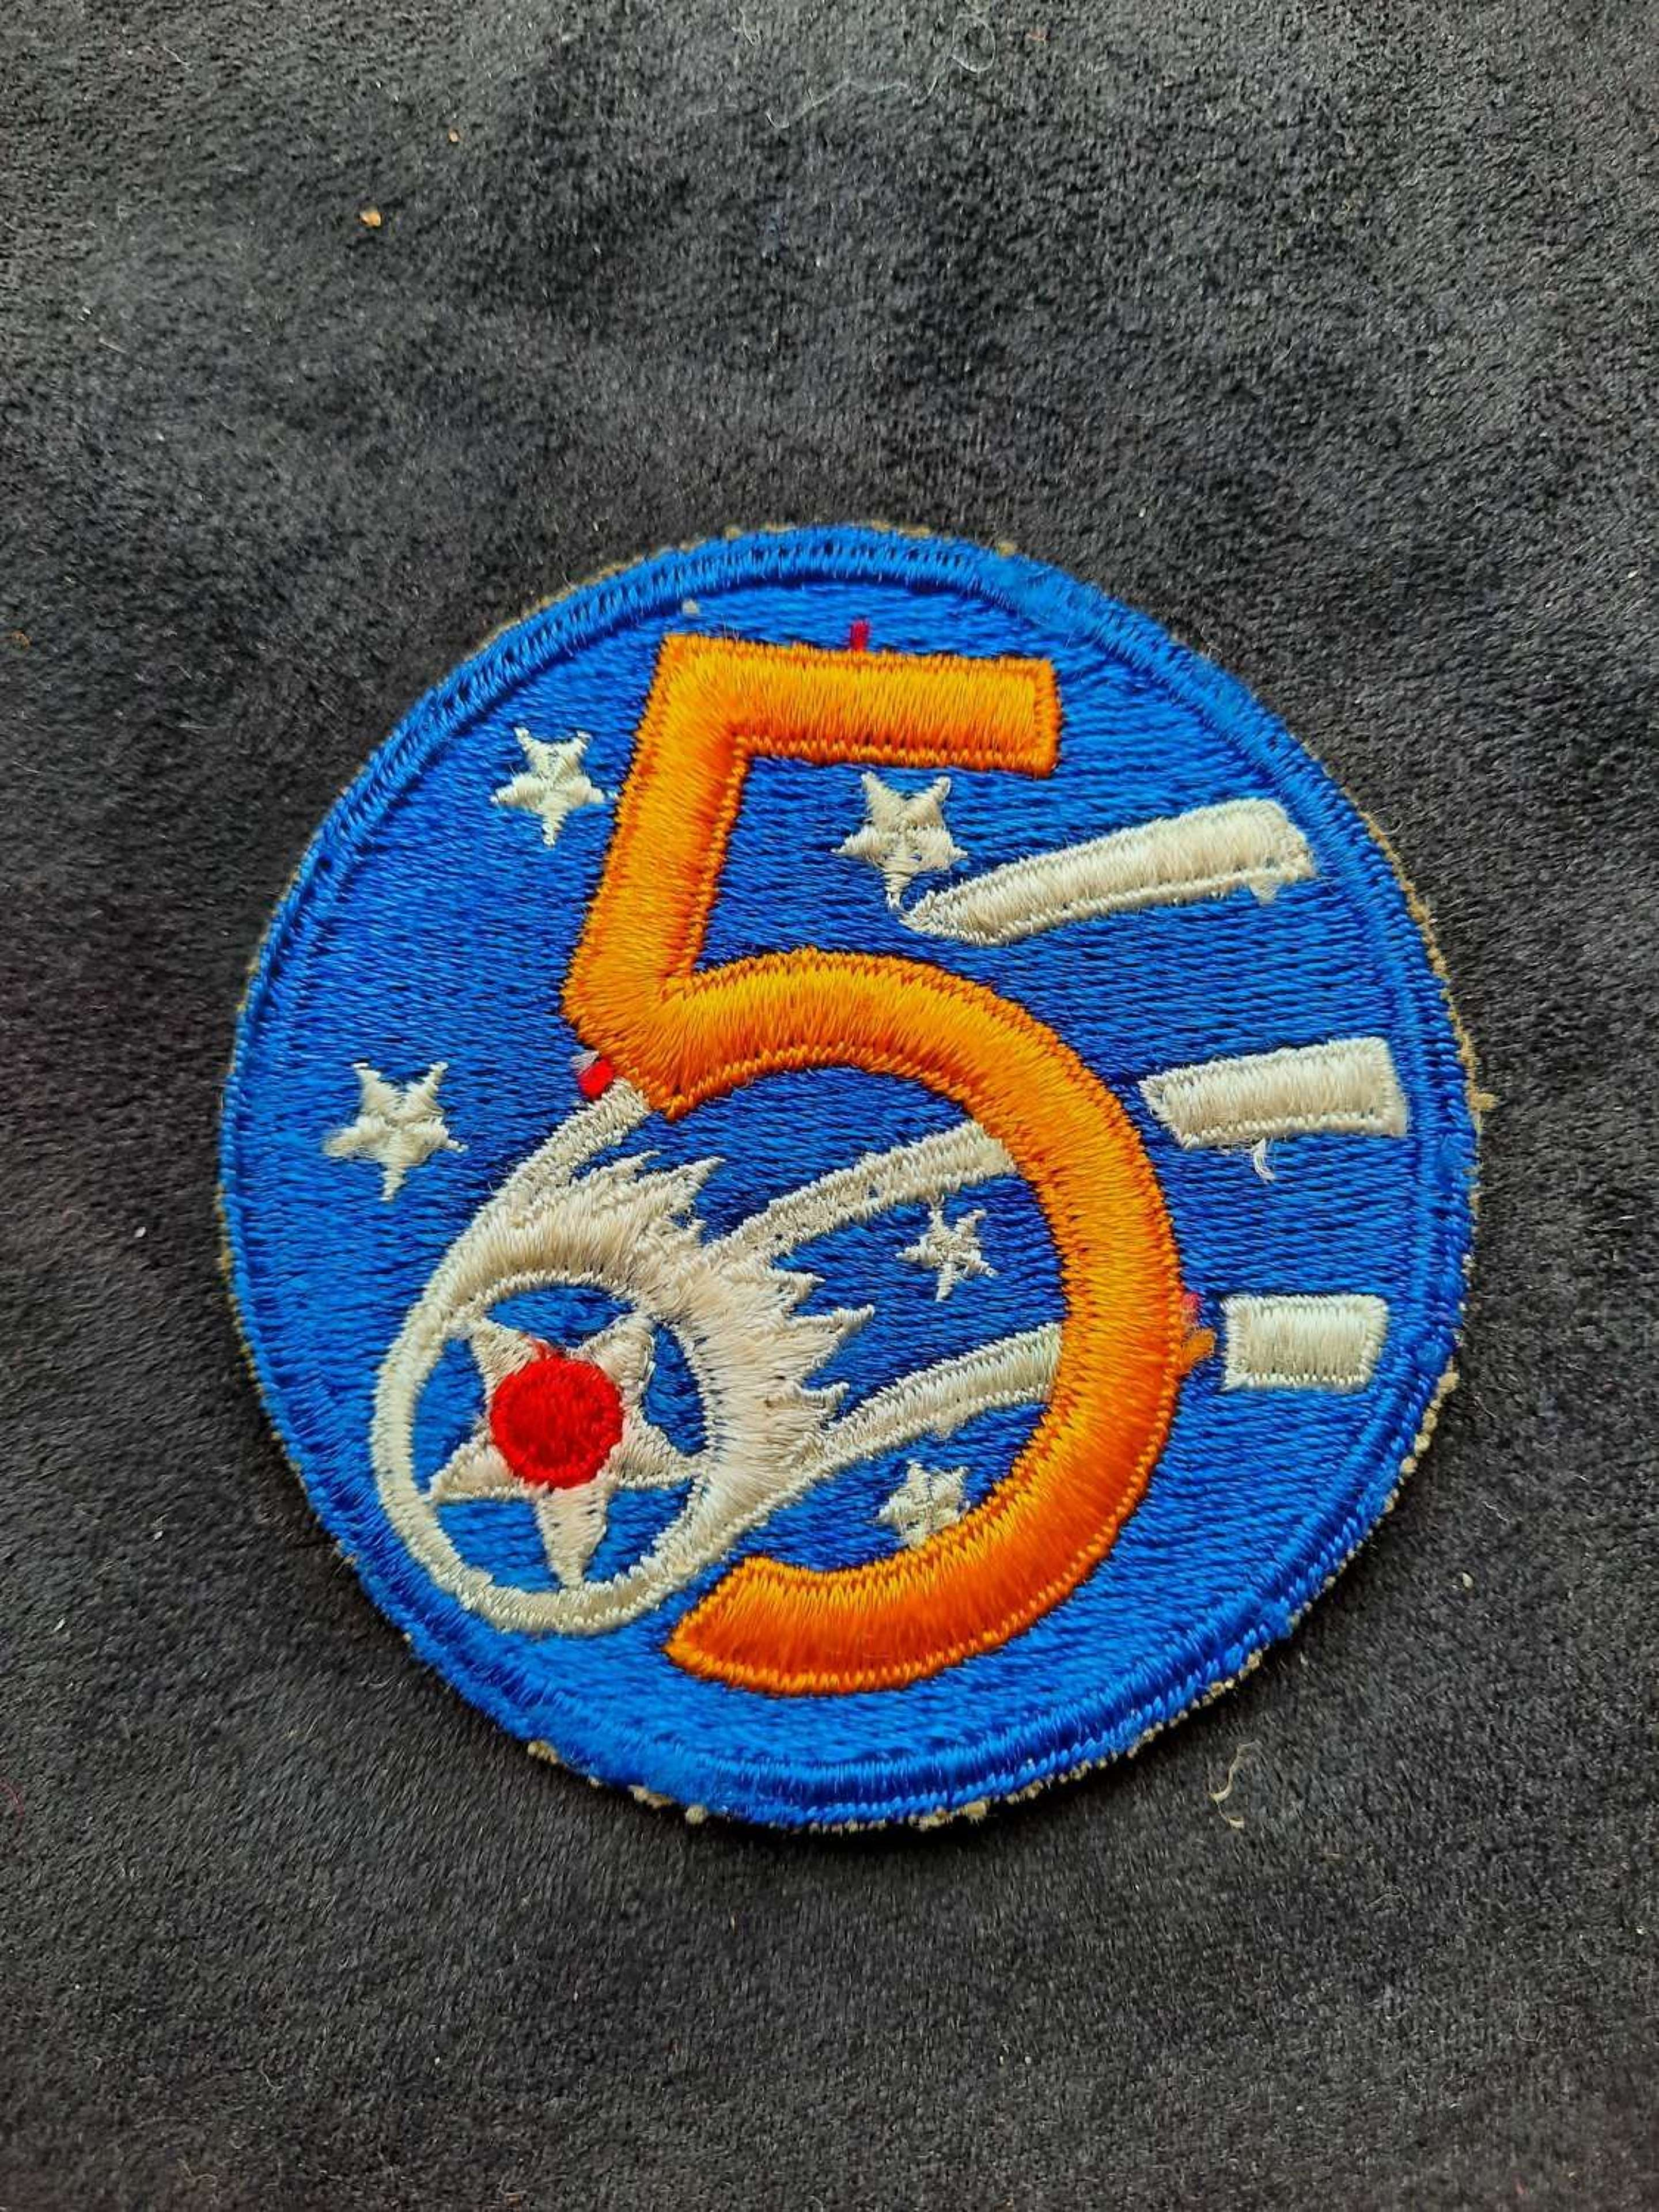 USAAF 5th Air Force Patch